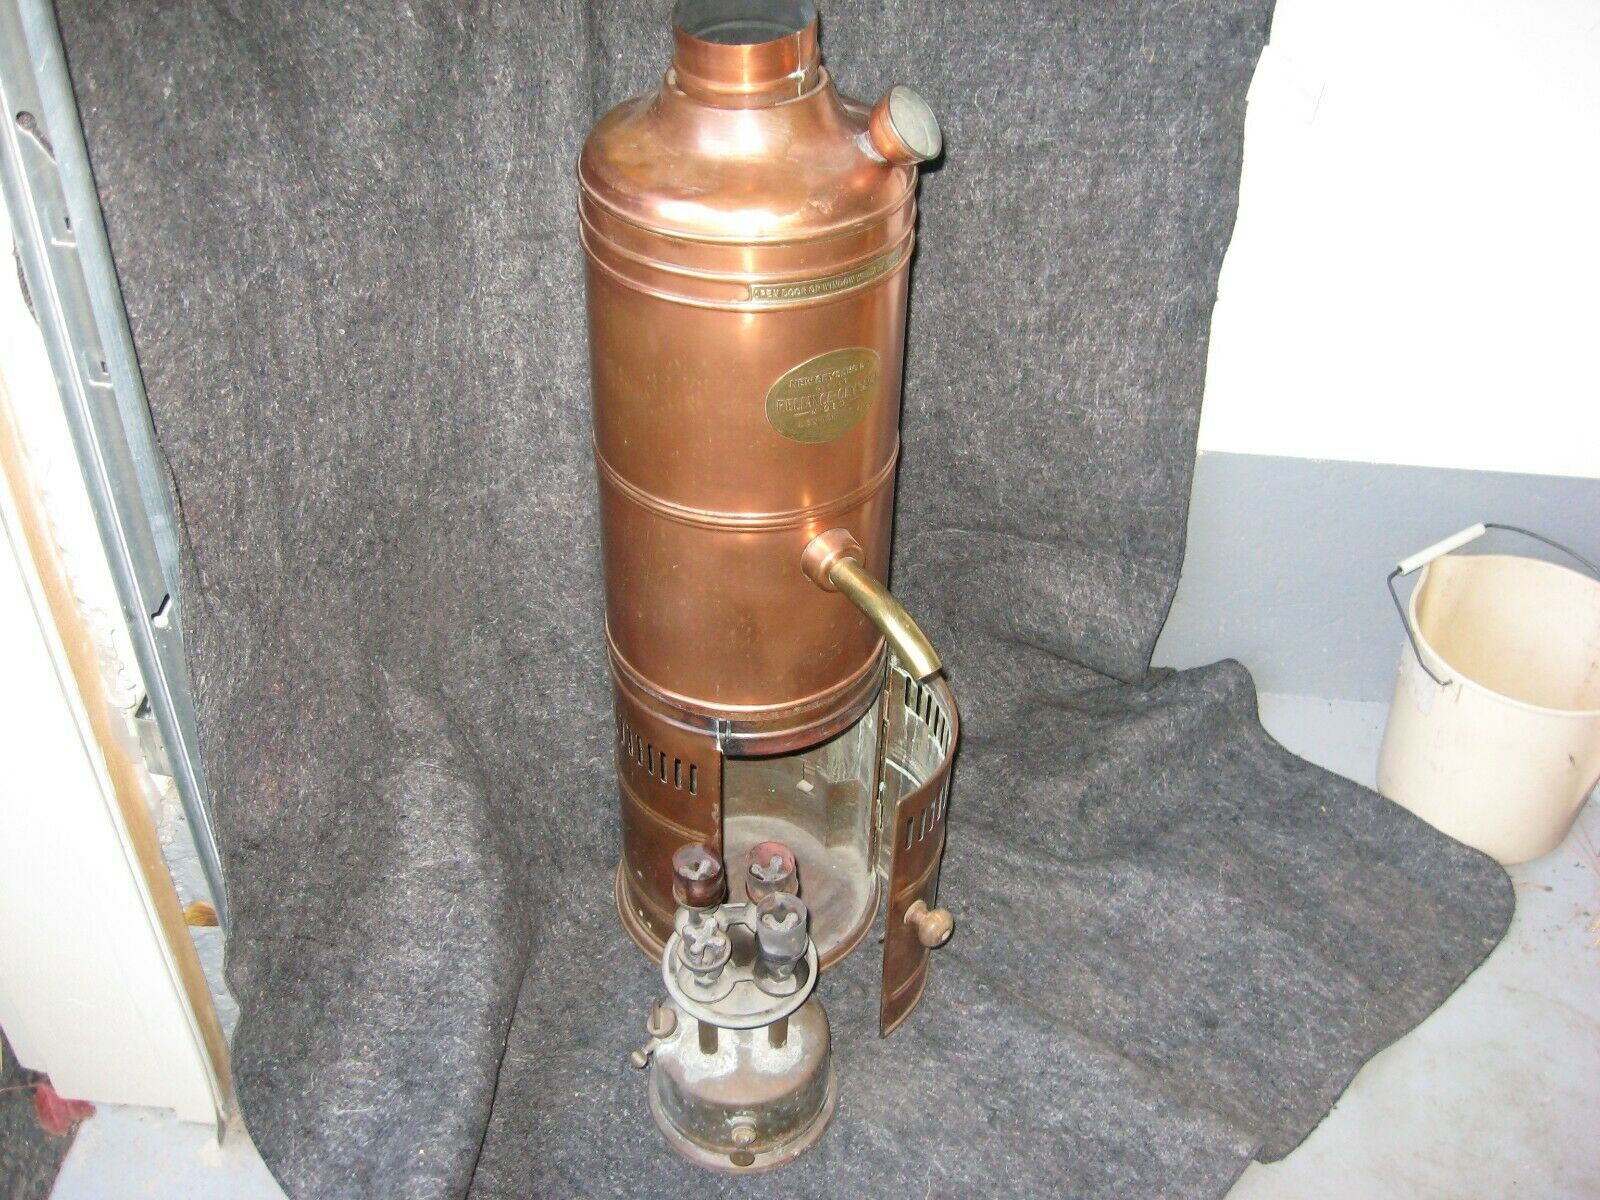 Antique English Water Heater With Heater Compartment And Kerosene Heater - $350.00